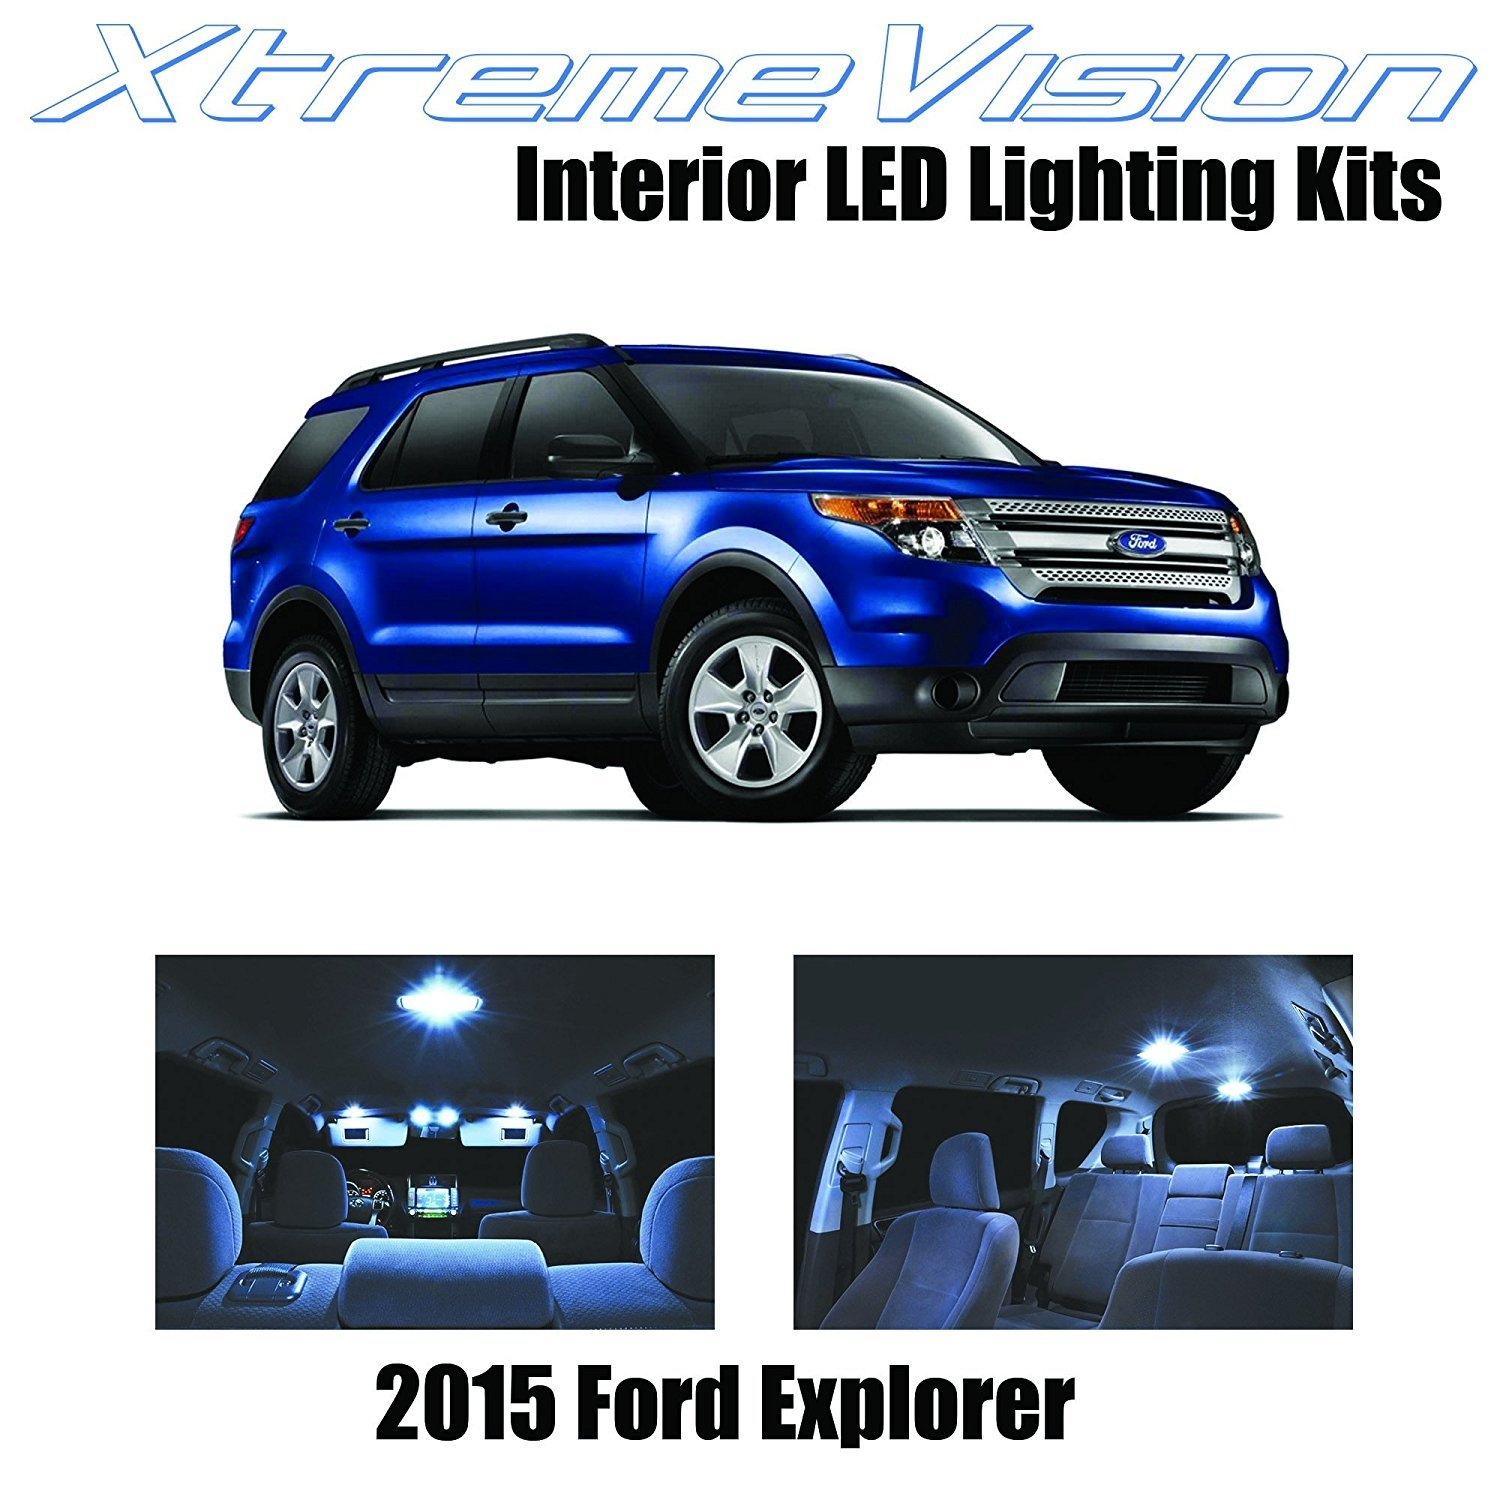 XtremeVision LED for Ford Explorer 2015+ (11 Pieces) Cool White Premium Interior LED Kit Package + Installation Tool